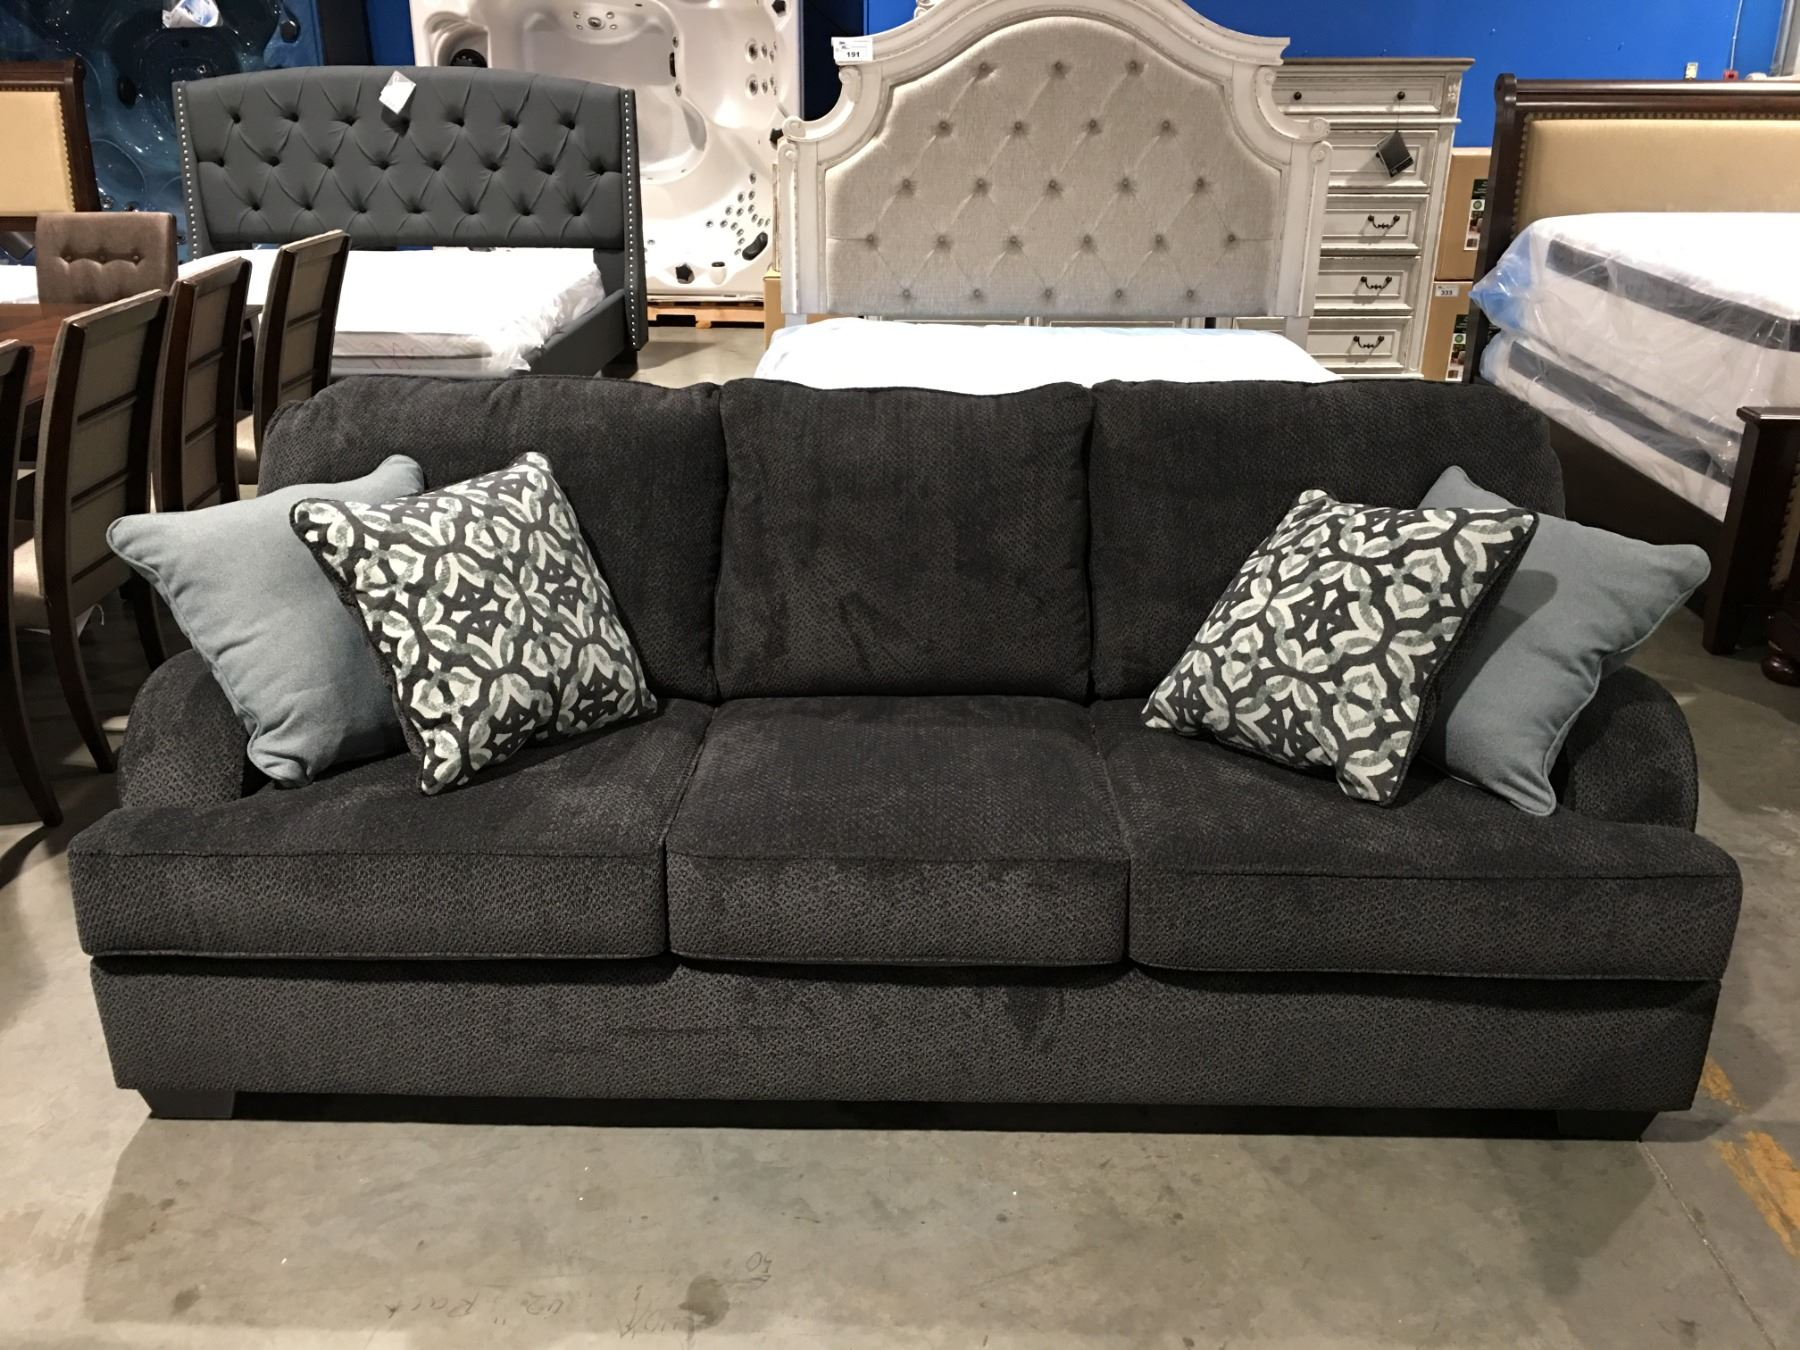 Enjoyable Charcoal Grey Upholstered 3 Seater Sofa With 4 Throw Cushions Download Free Architecture Designs Rallybritishbridgeorg